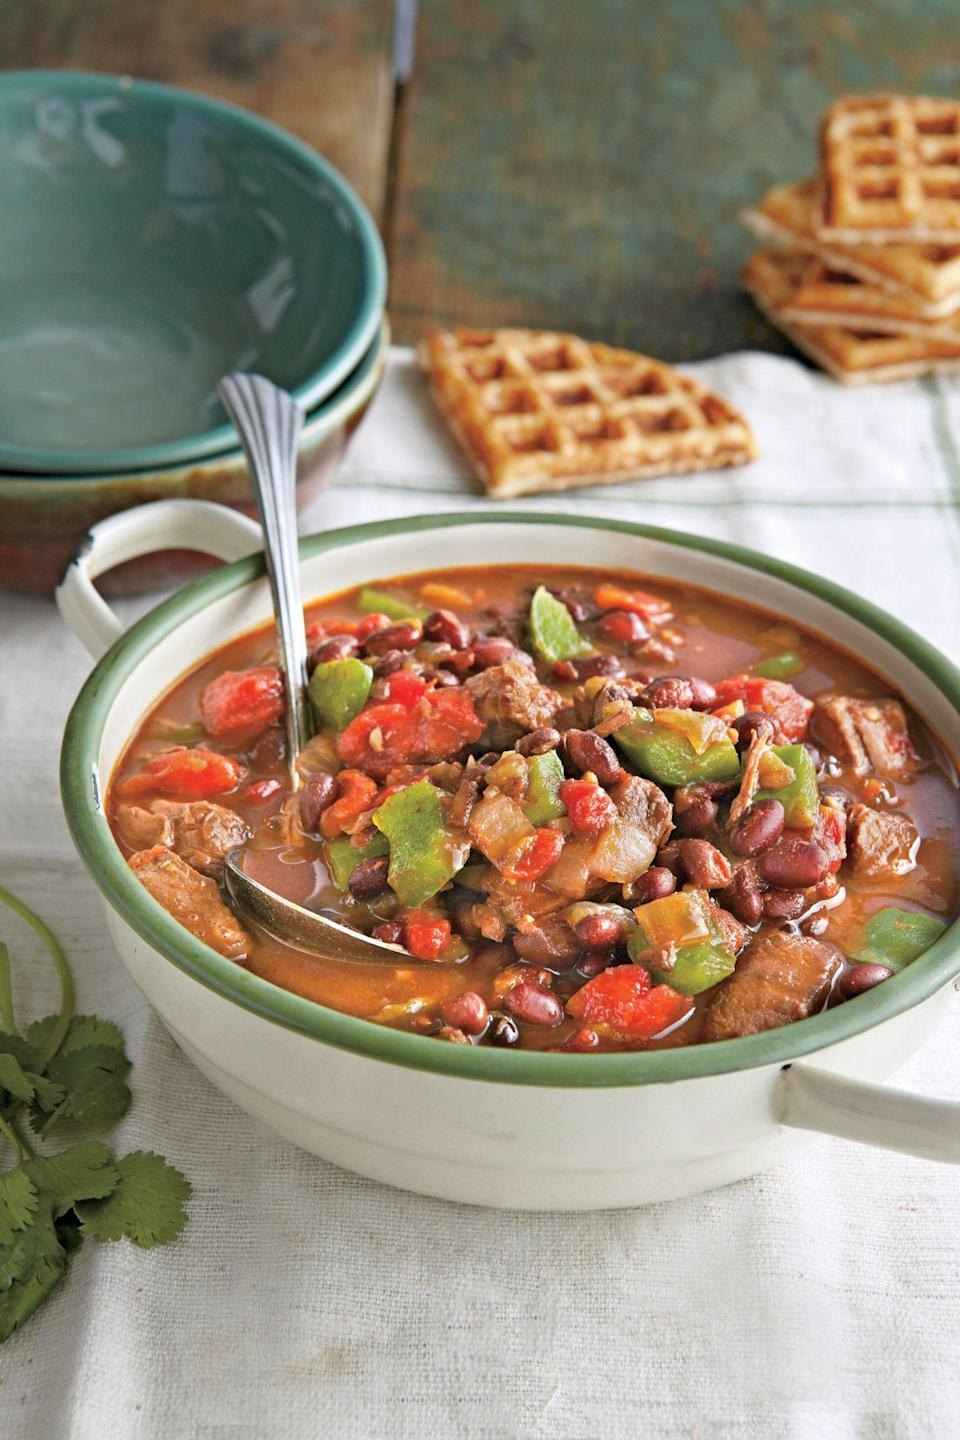 """<p><strong>Recipe: <a href=""""http://www.myrecipes.com/recipe/spicy-steak-black-bean-chili"""" rel=""""nofollow noopener"""" target=""""_blank"""" data-ylk=""""slk:Spicy Steak and Black Bean Chili"""" class=""""link rapid-noclick-resp"""">Spicy Steak and Black Bean Chili</a></strong></p> <p>Easy Side: Prepare batter from 2 (6-oz.) packages buttermilk cornbread mix according to package directions. Cook batter, in batches, in a preheated, oiled waffle iron until done.</p>"""